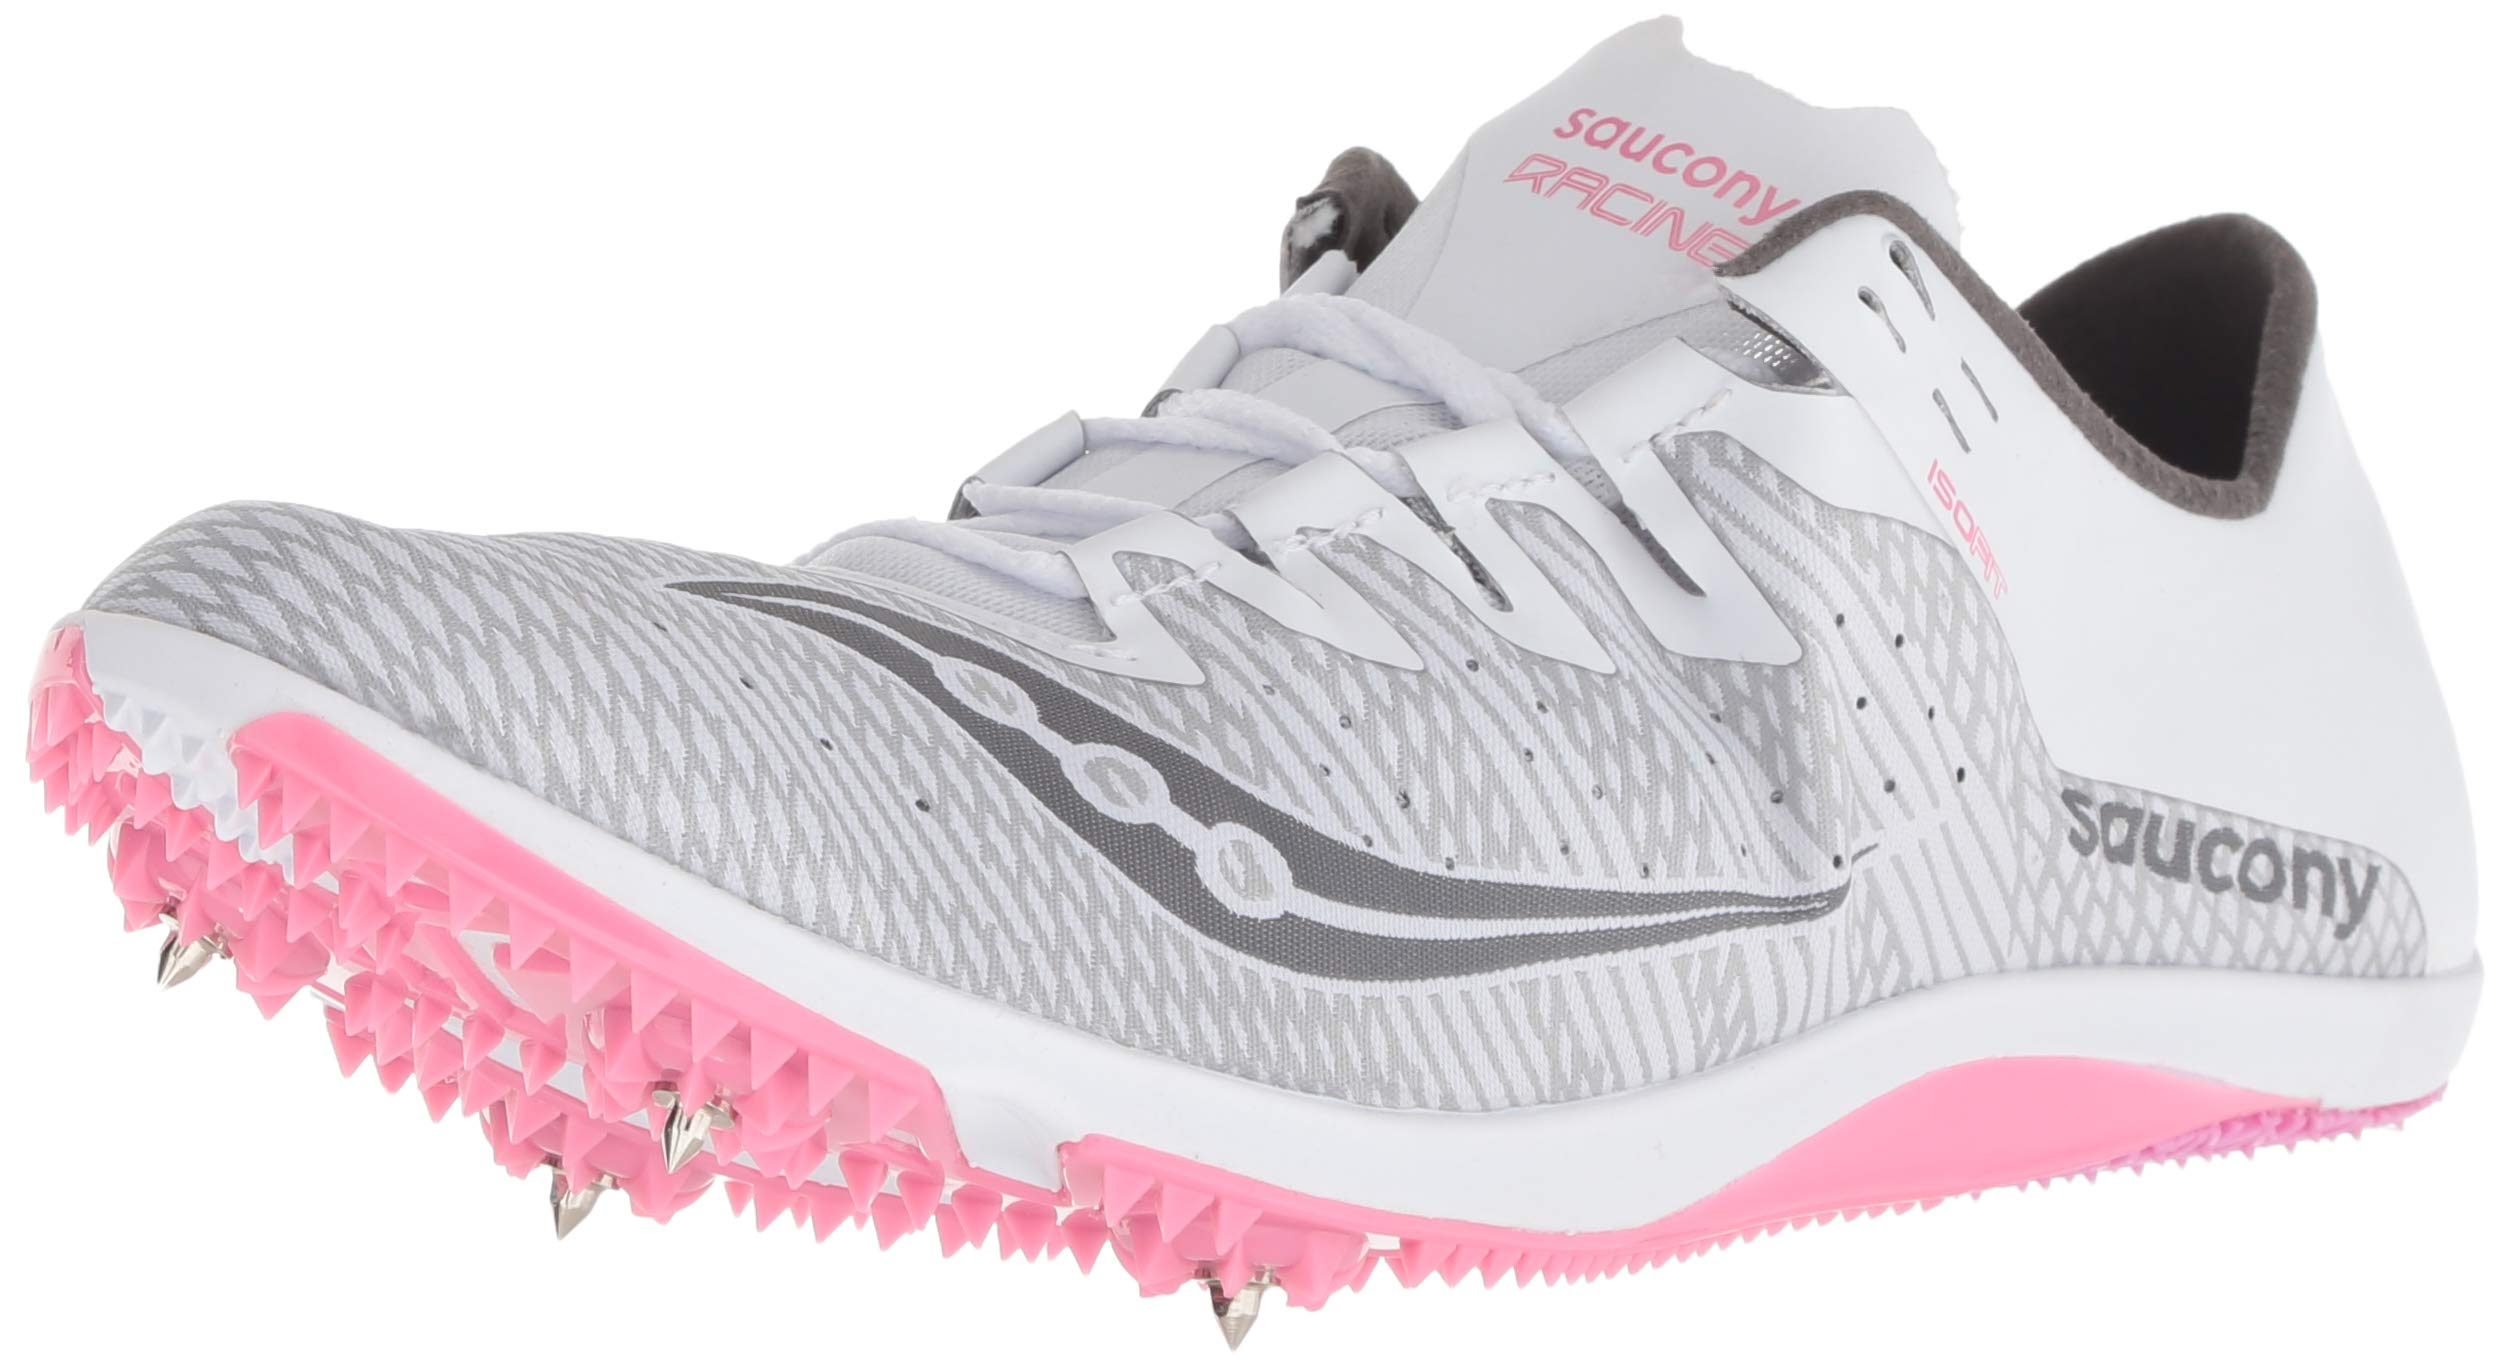 Saucony Women's Endorphin 2 Track Shoe, White/Pink, 7.5 Medium US by Saucony